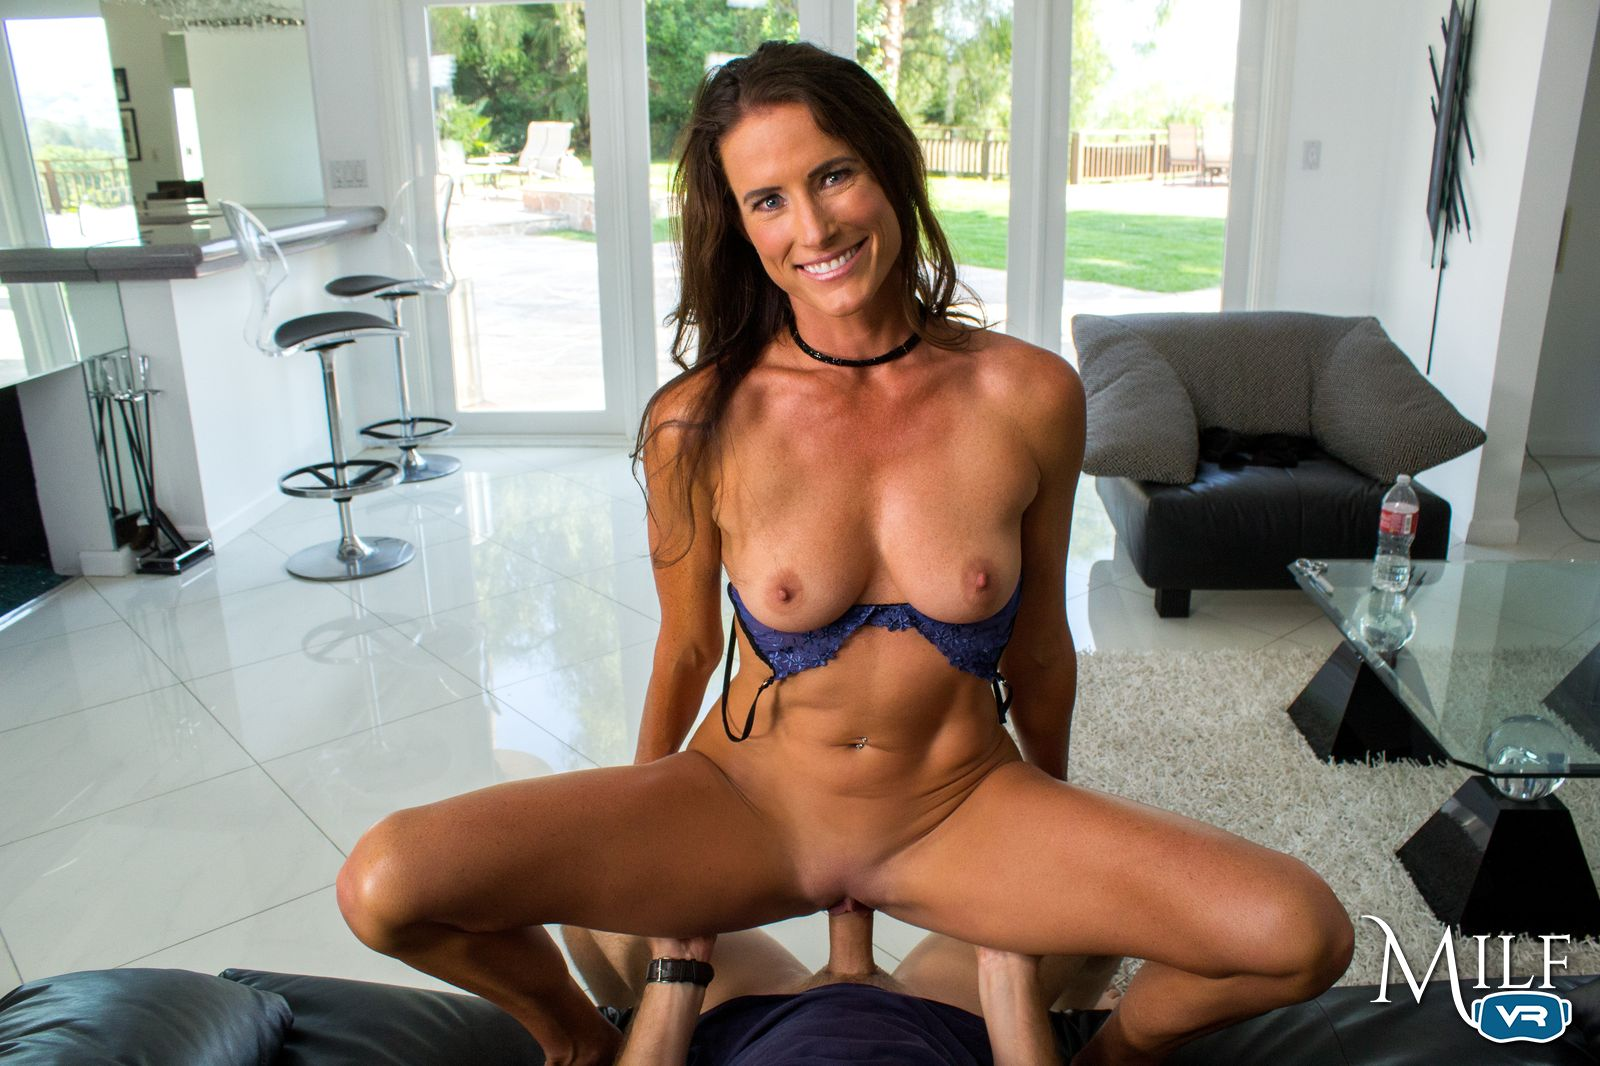 The hot brunette MILF Sofie Marie is only happy when she has a mouthful of  rock-hard cock… can you help her out?